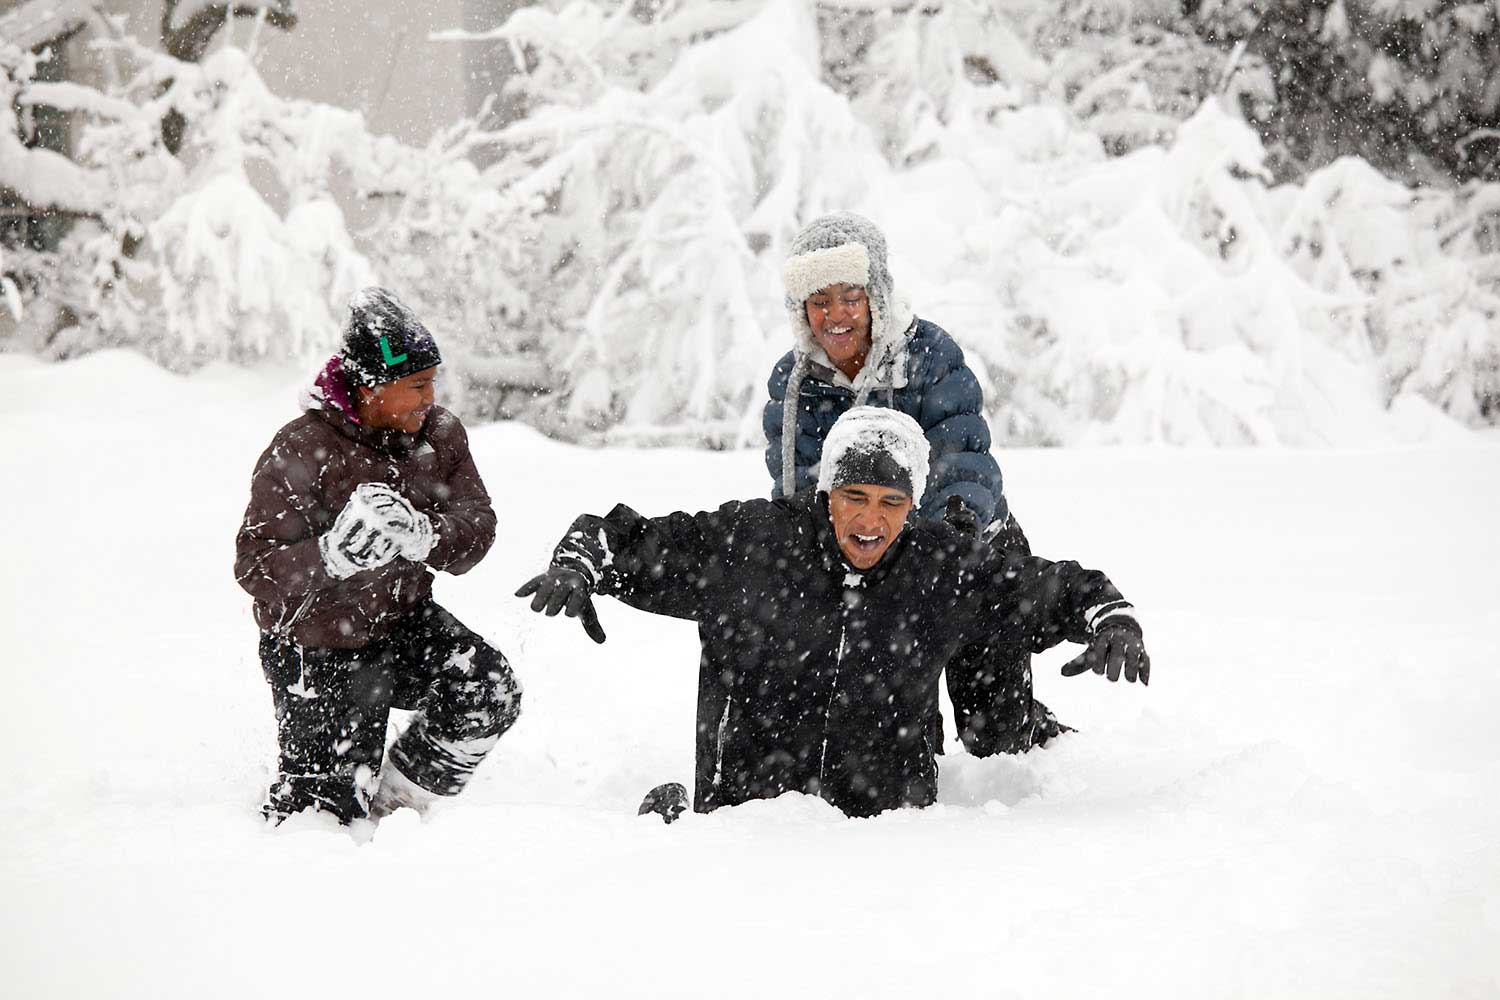 President Barack Obama and his daughters, Sasha and Malia, play in the snowstorm at the White House, Saturday, Feb. 6, 2010.